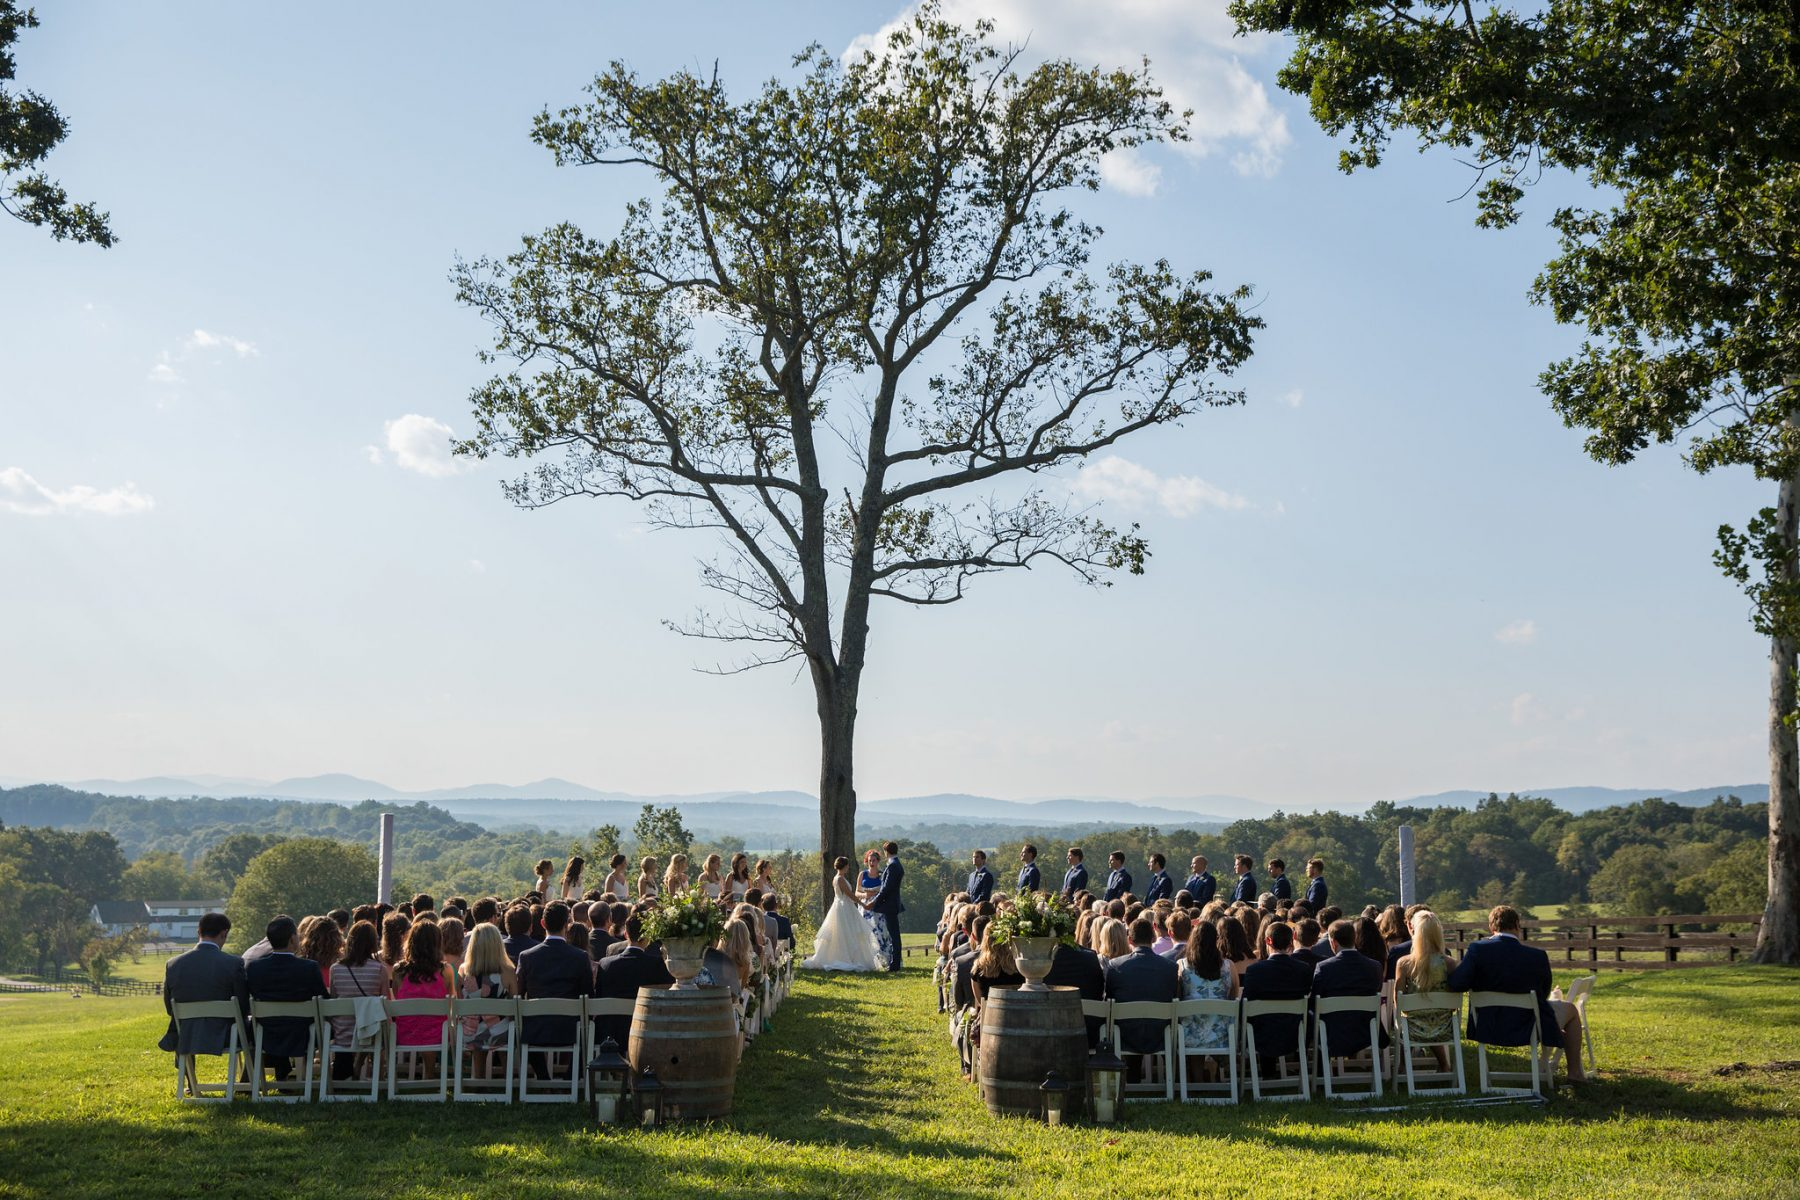 Wedding with Mountain Views under large tree at Mount Ida Farm and Vineyard's Mountain View Ceremony Site